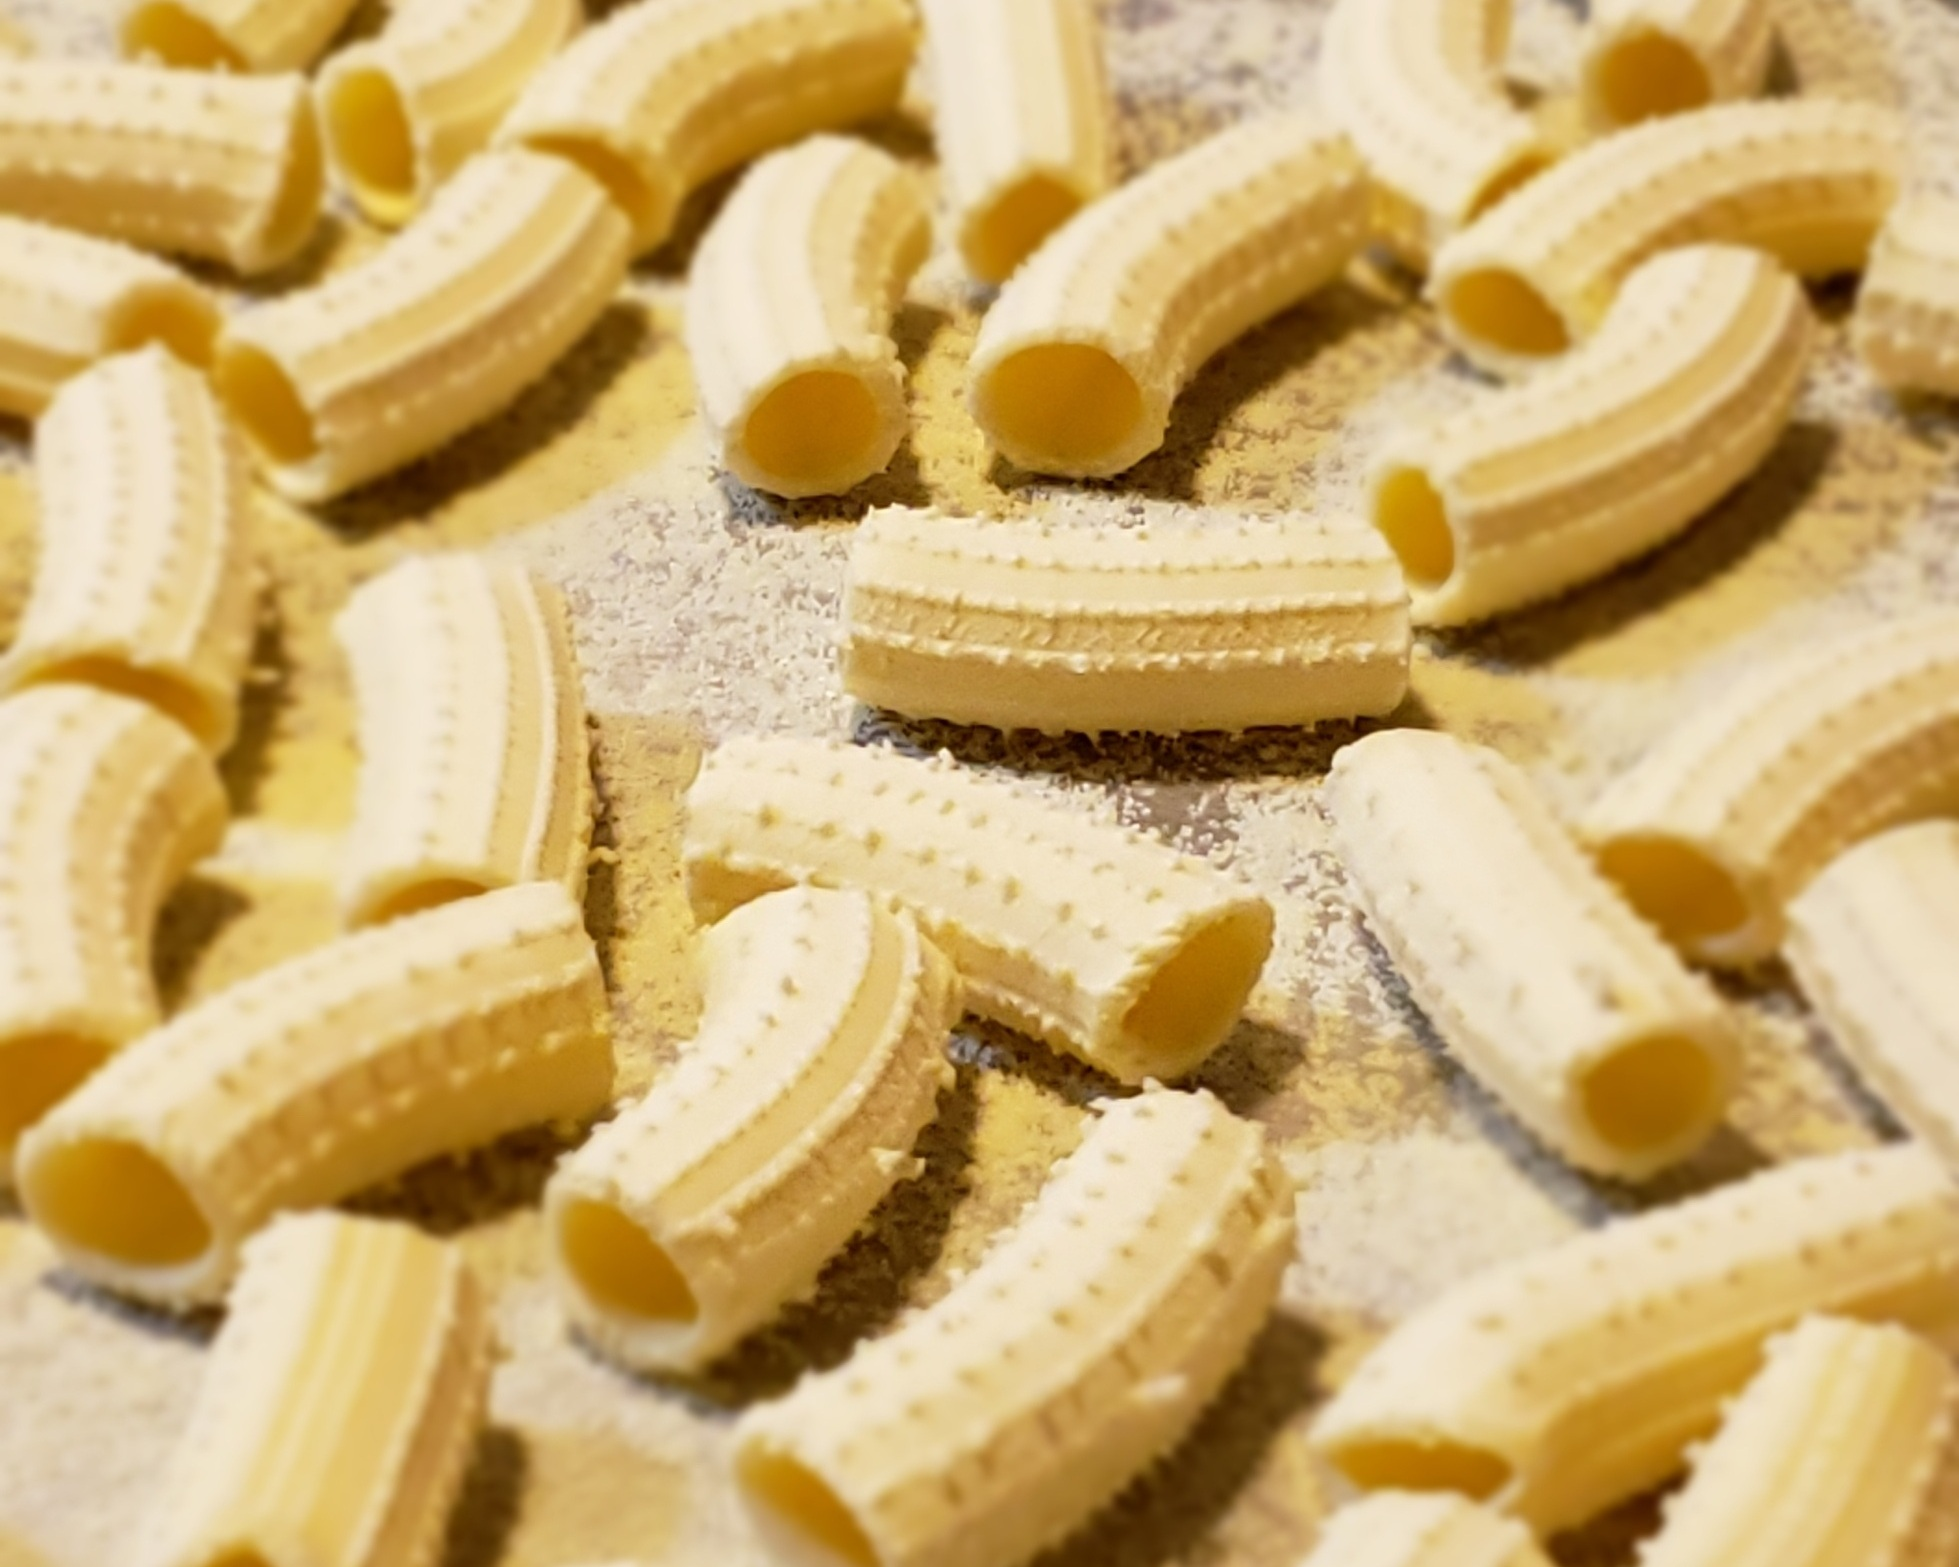 Close-up of the texture of fresh rigatoni.